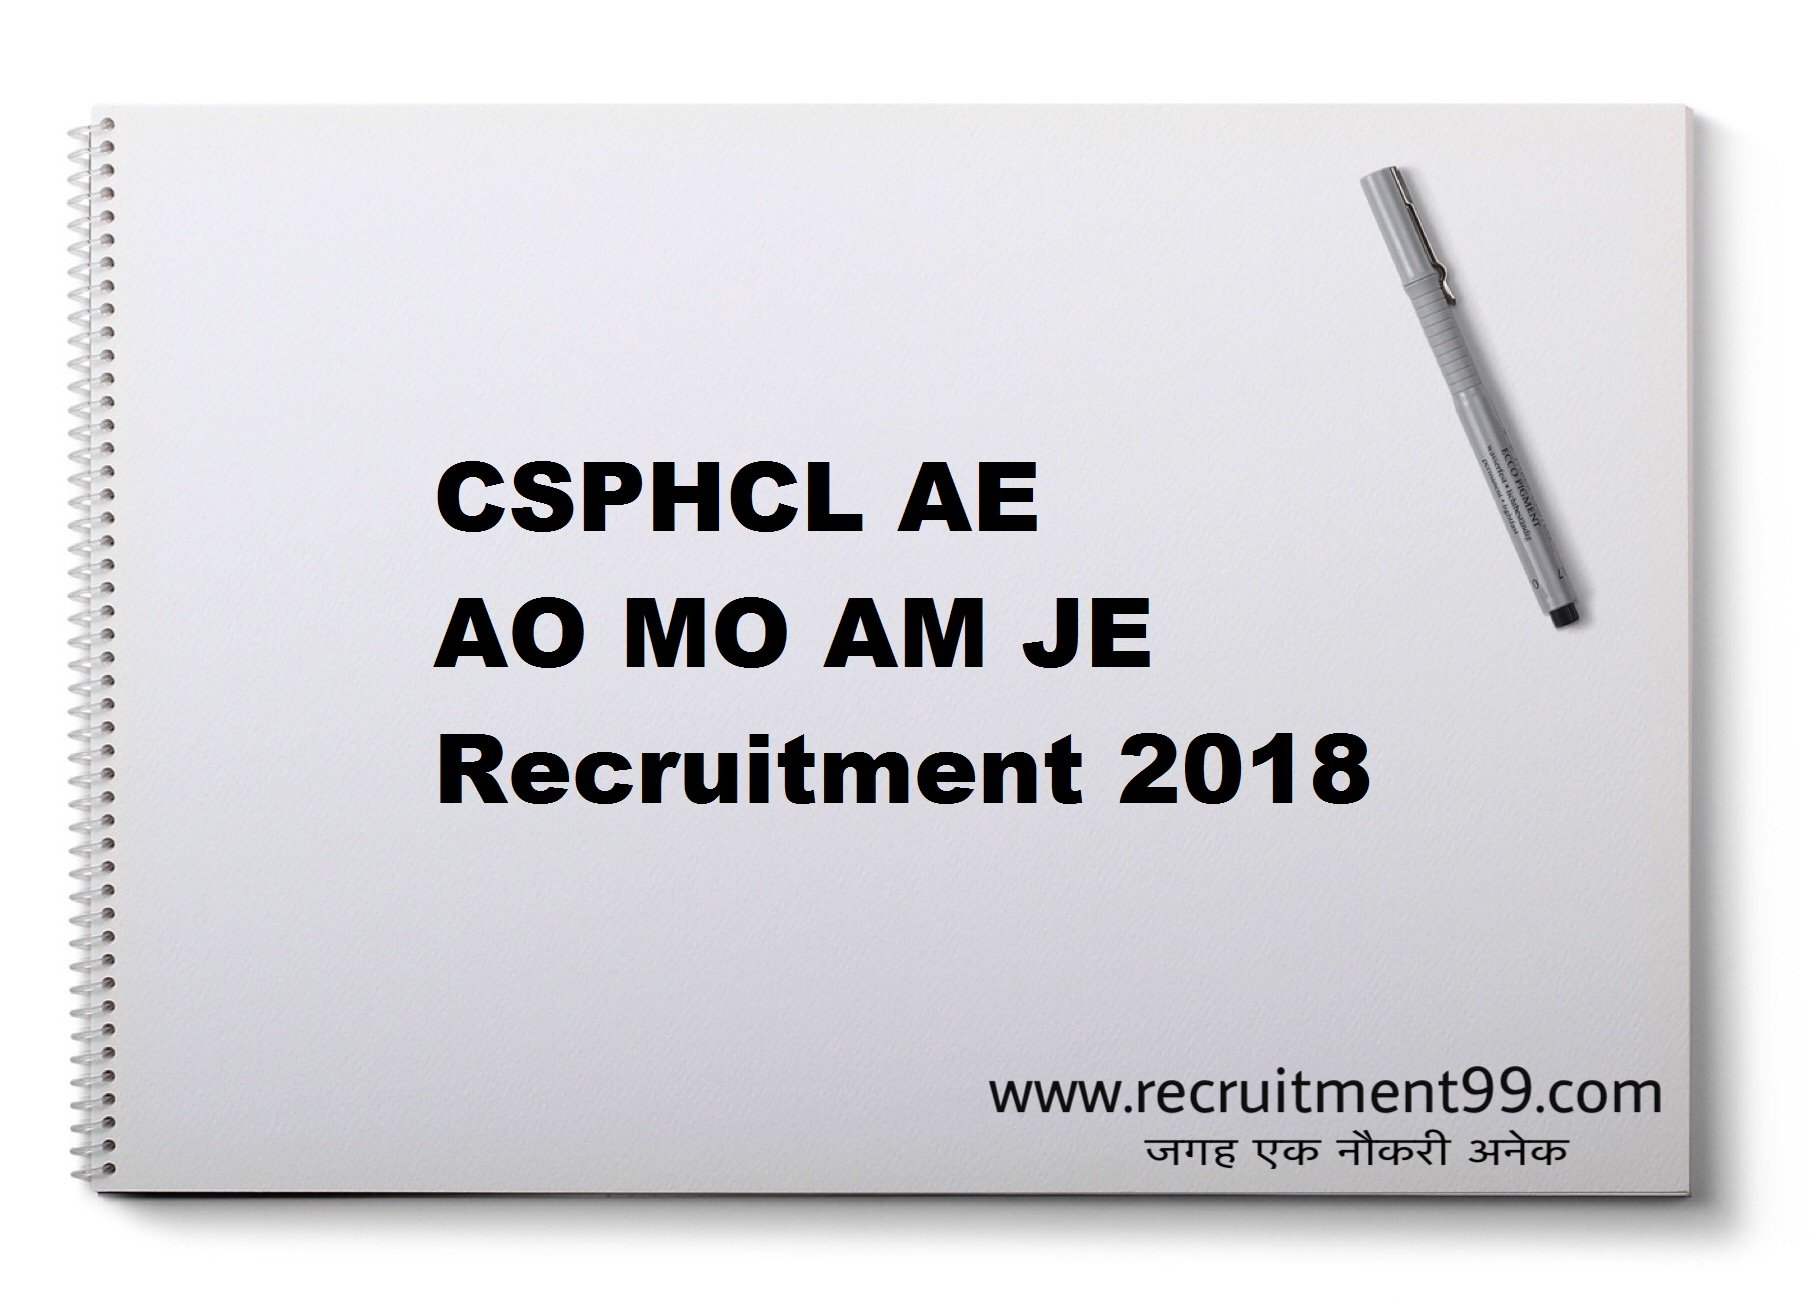 CSPHCL AE AO MO AM Recruitment Admit Card Result 2018